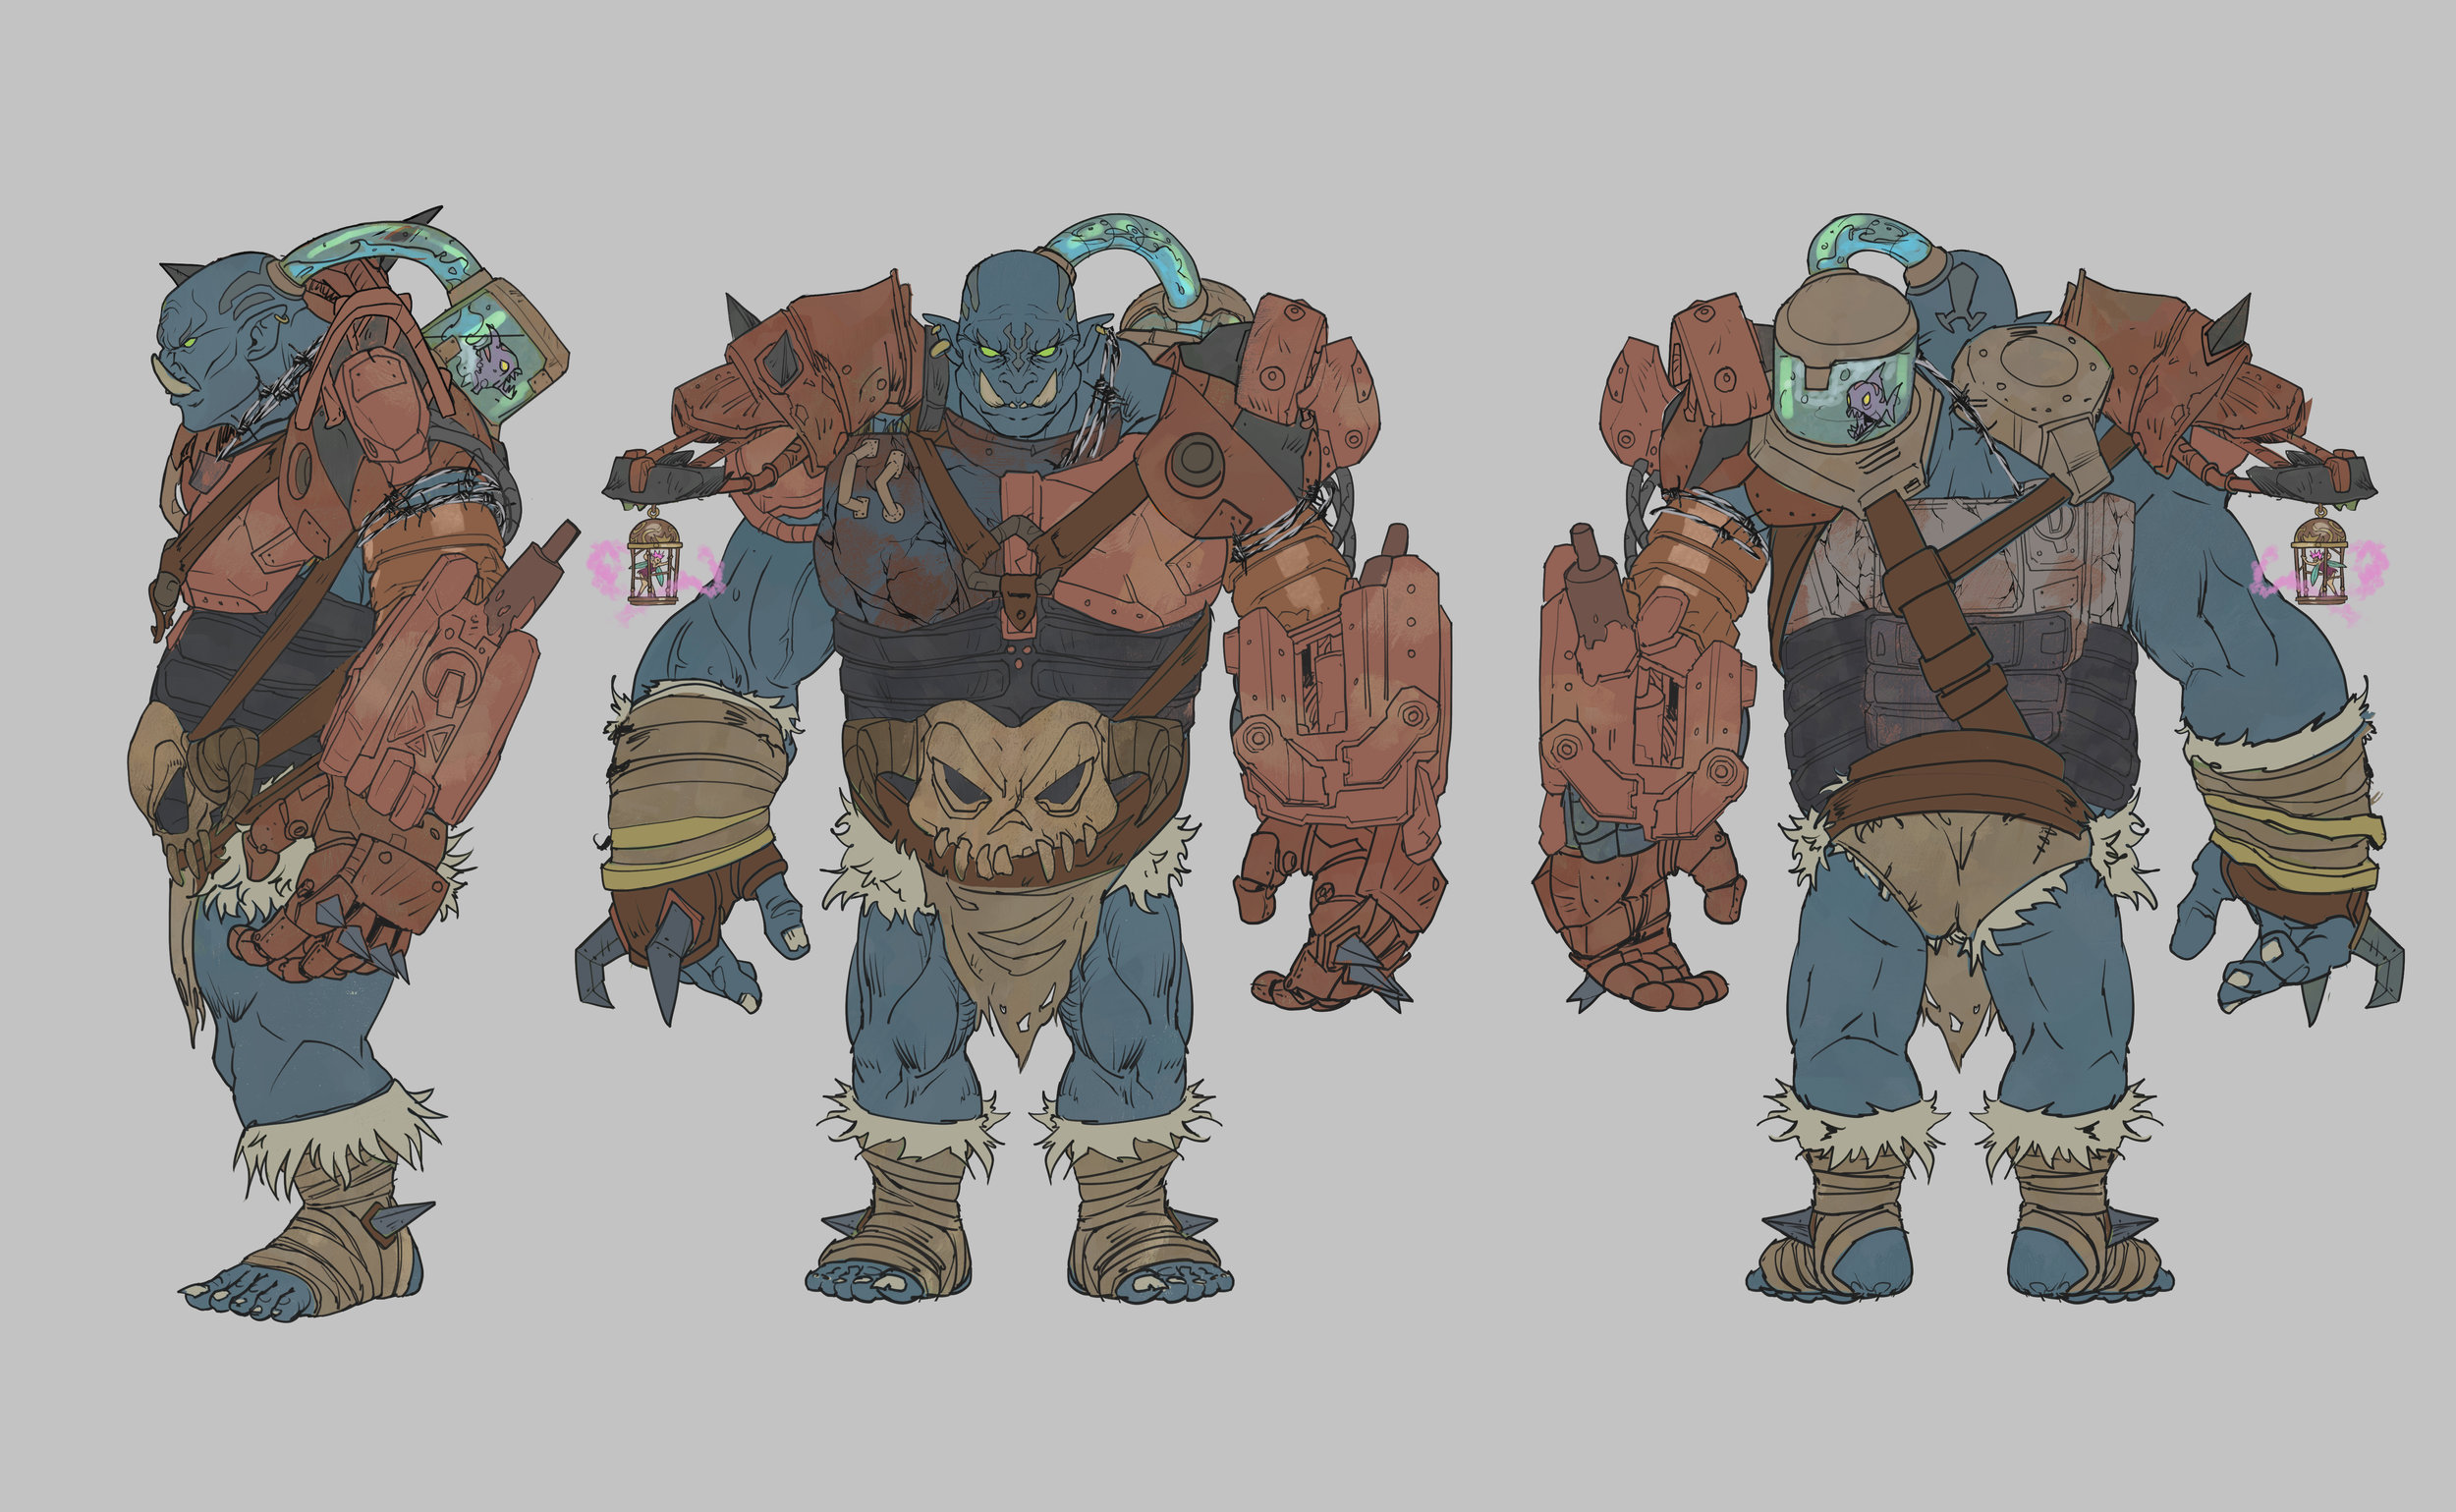 Samuel-more-Cyborg-Orc-3rd-corrections.jpg